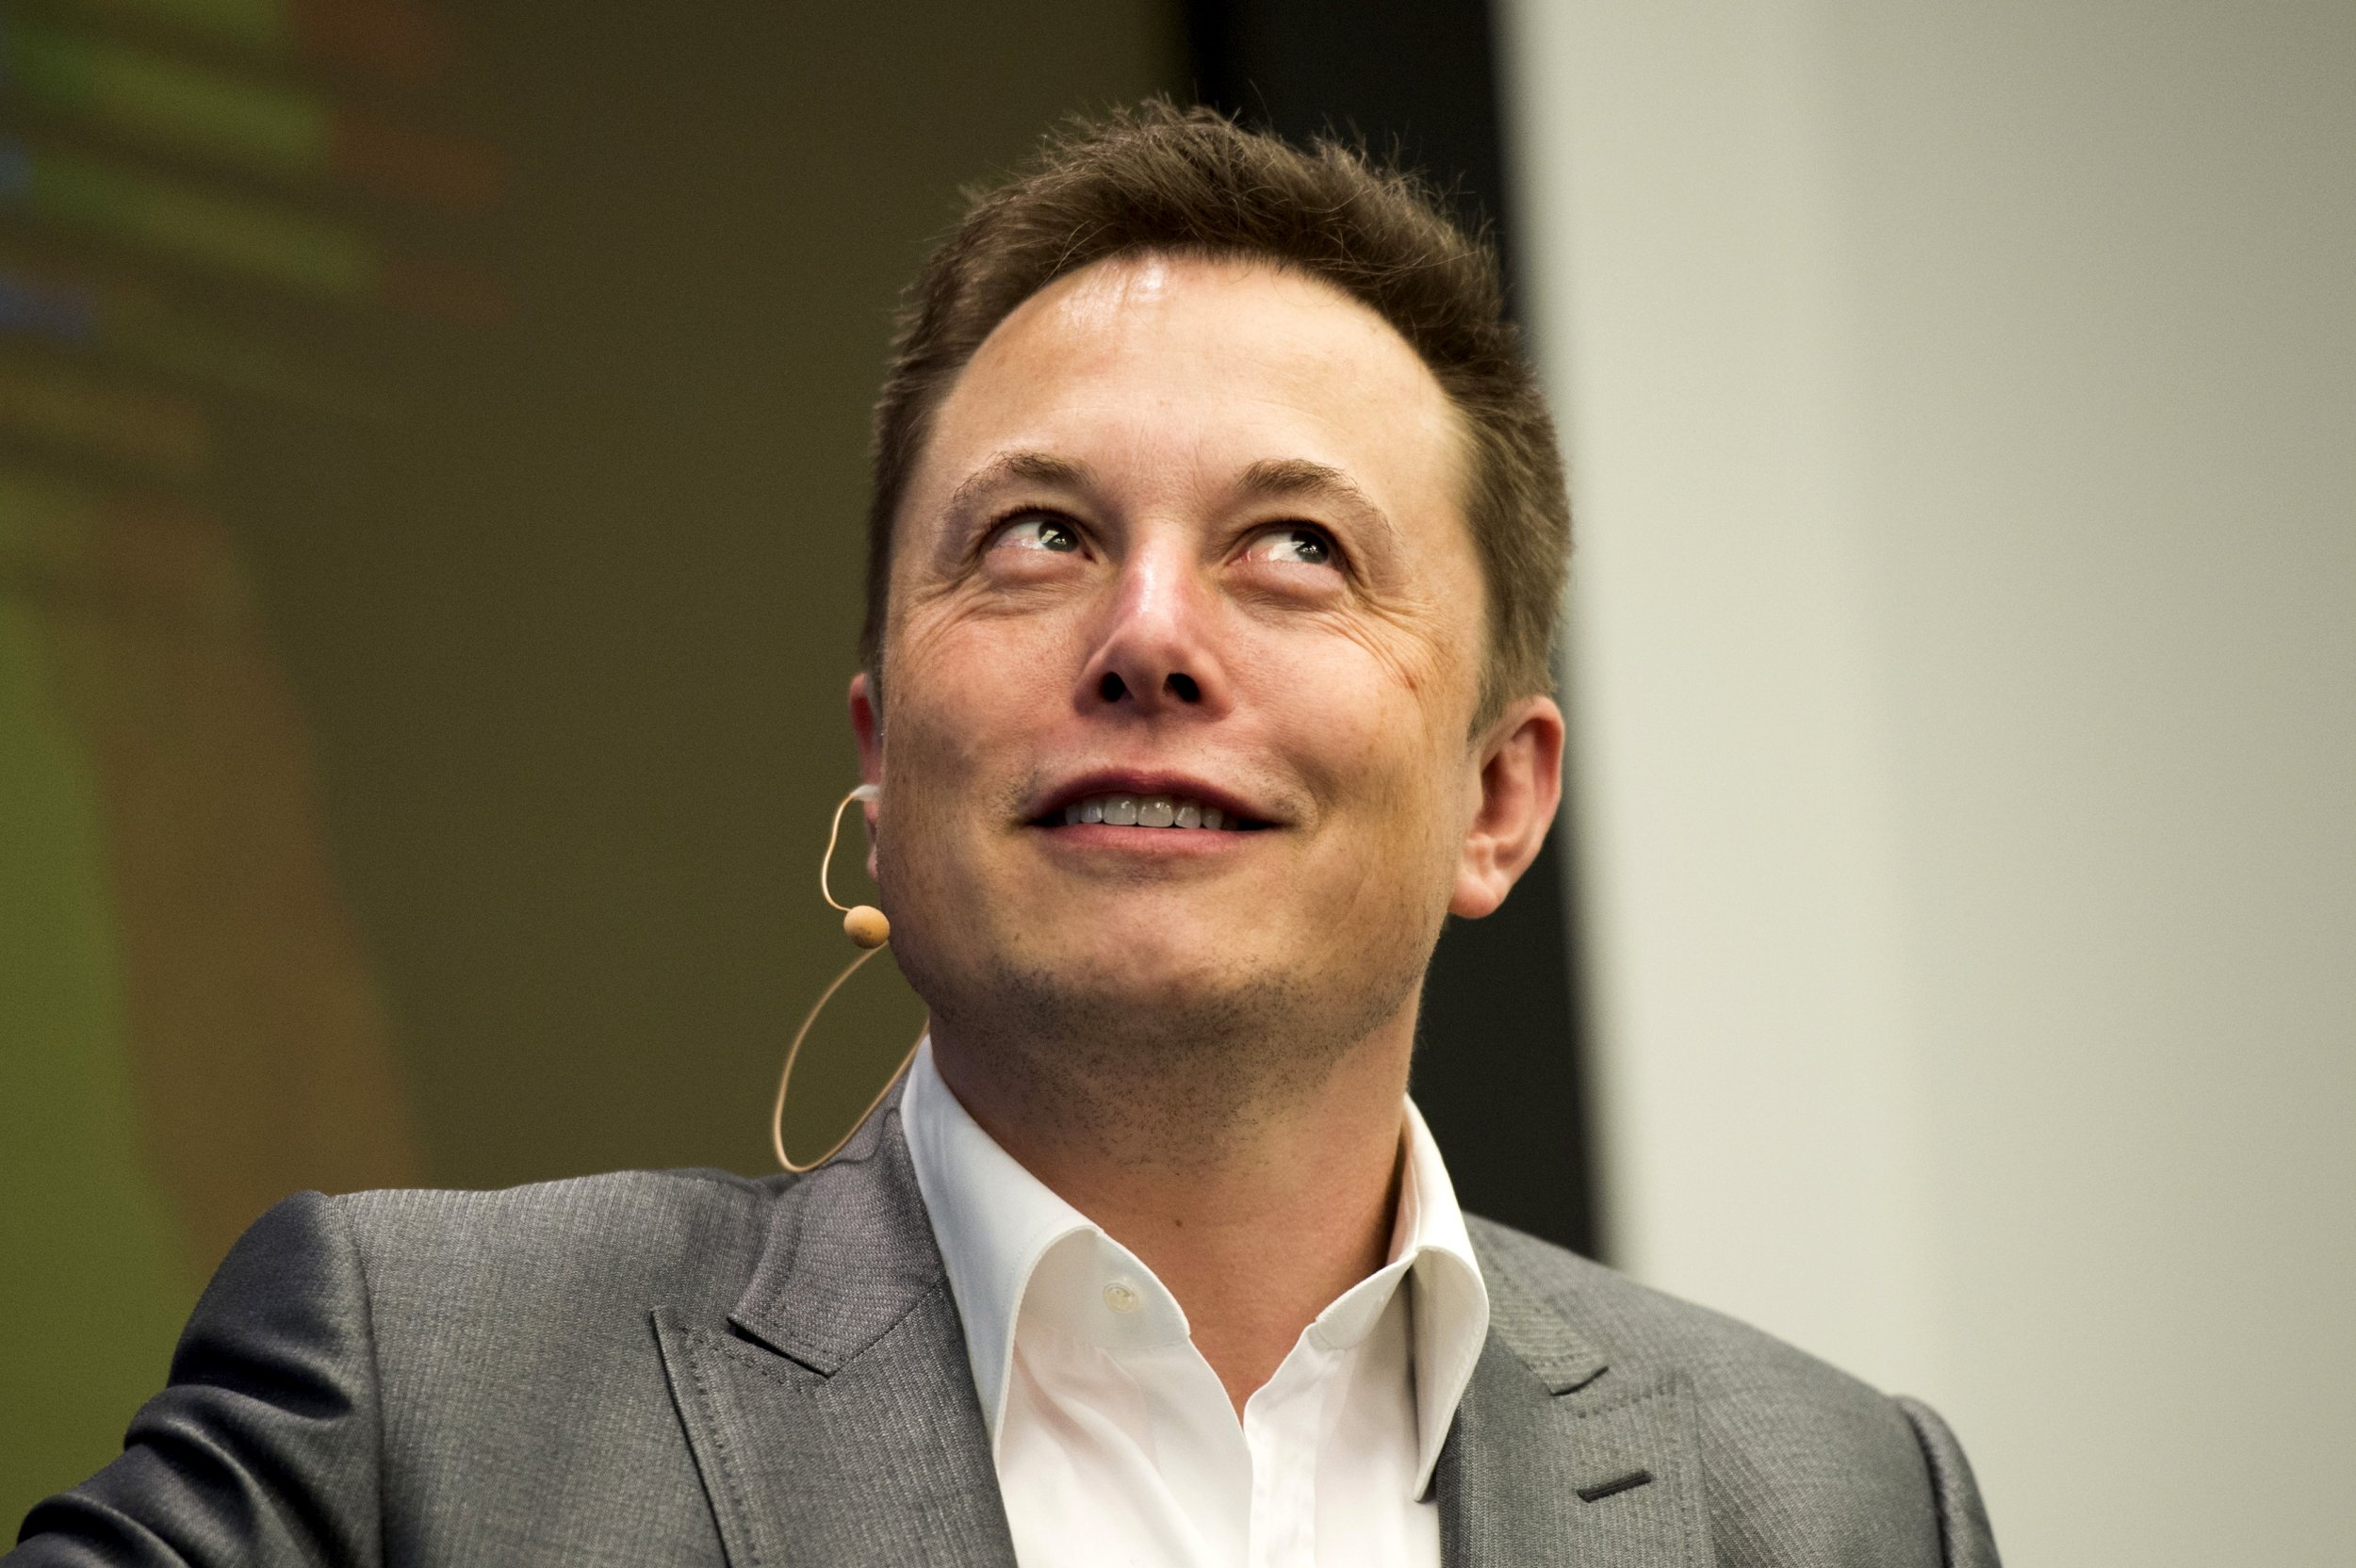 Elon Musk Weighs in On Volkswagen Cheating Scandal